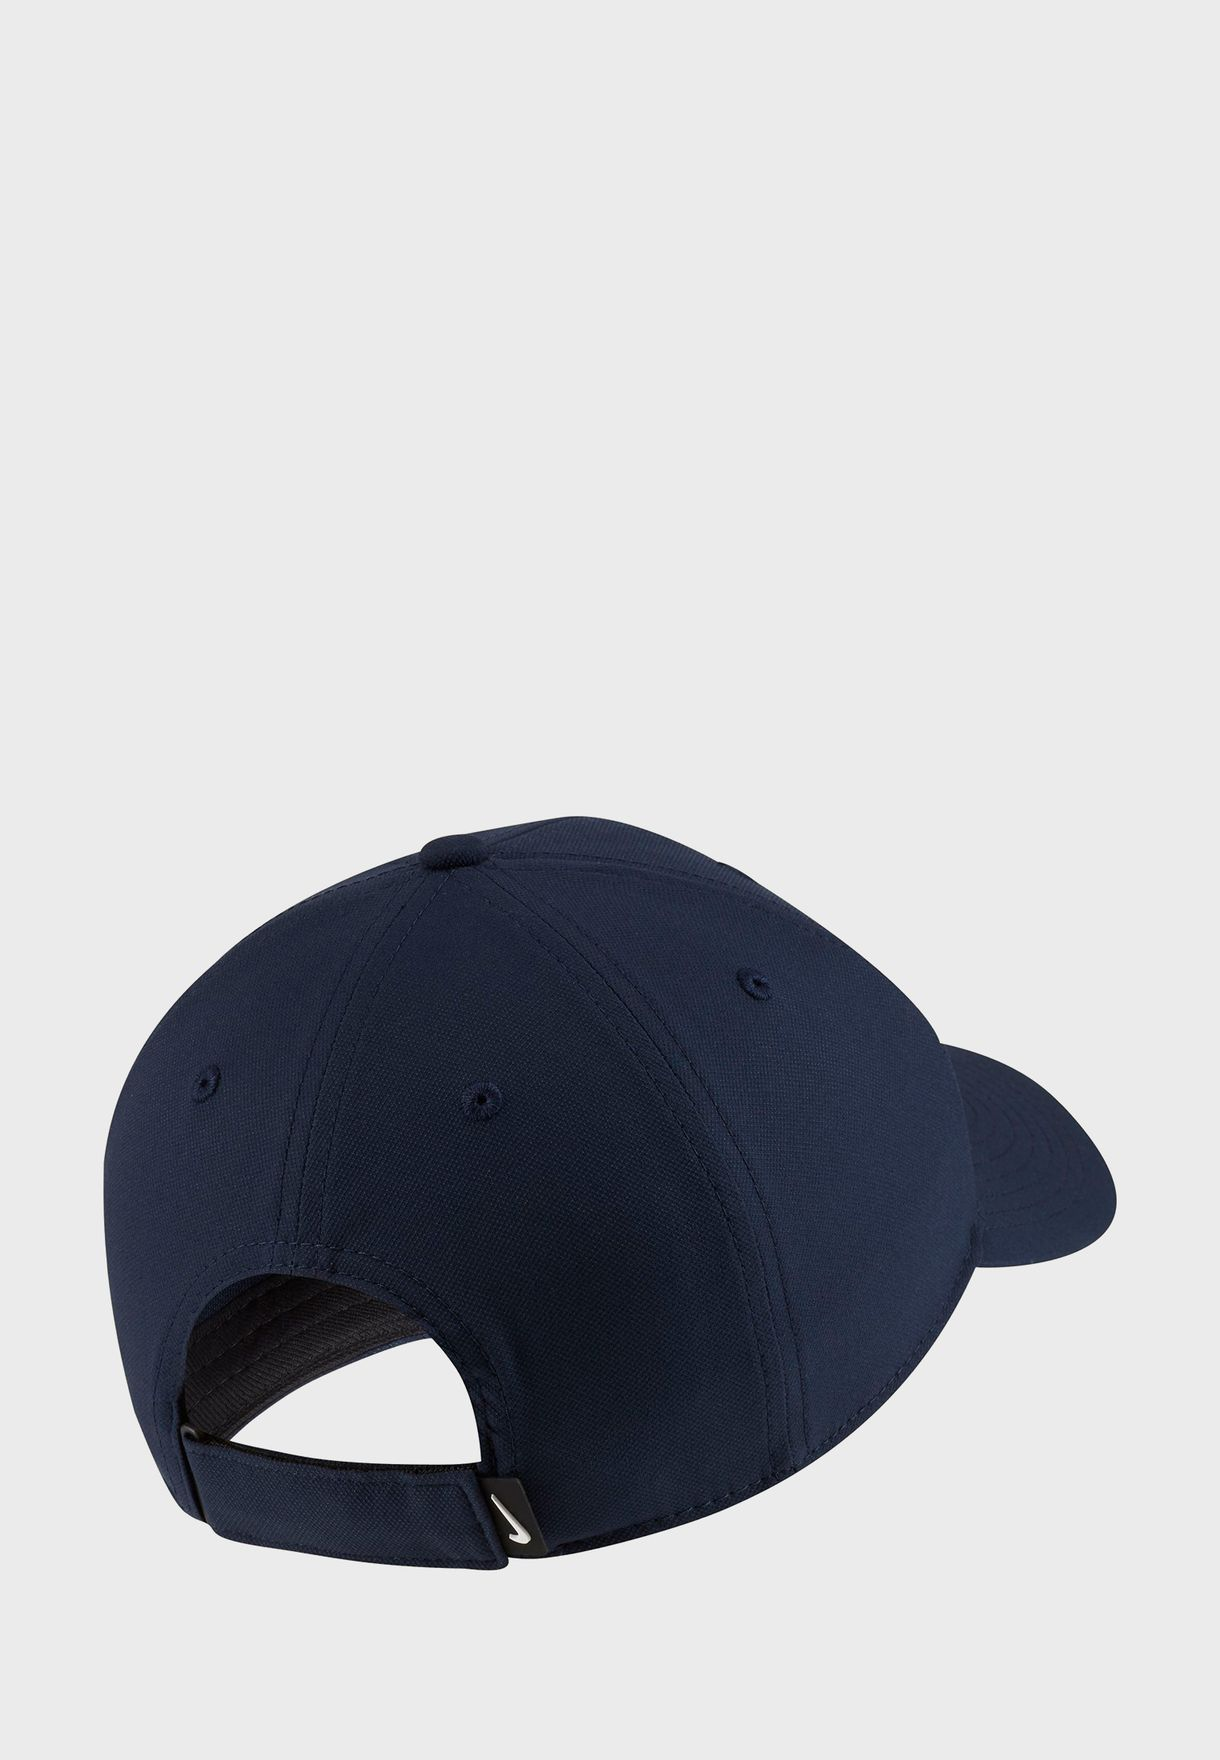 L91 Dri-FIT Cap